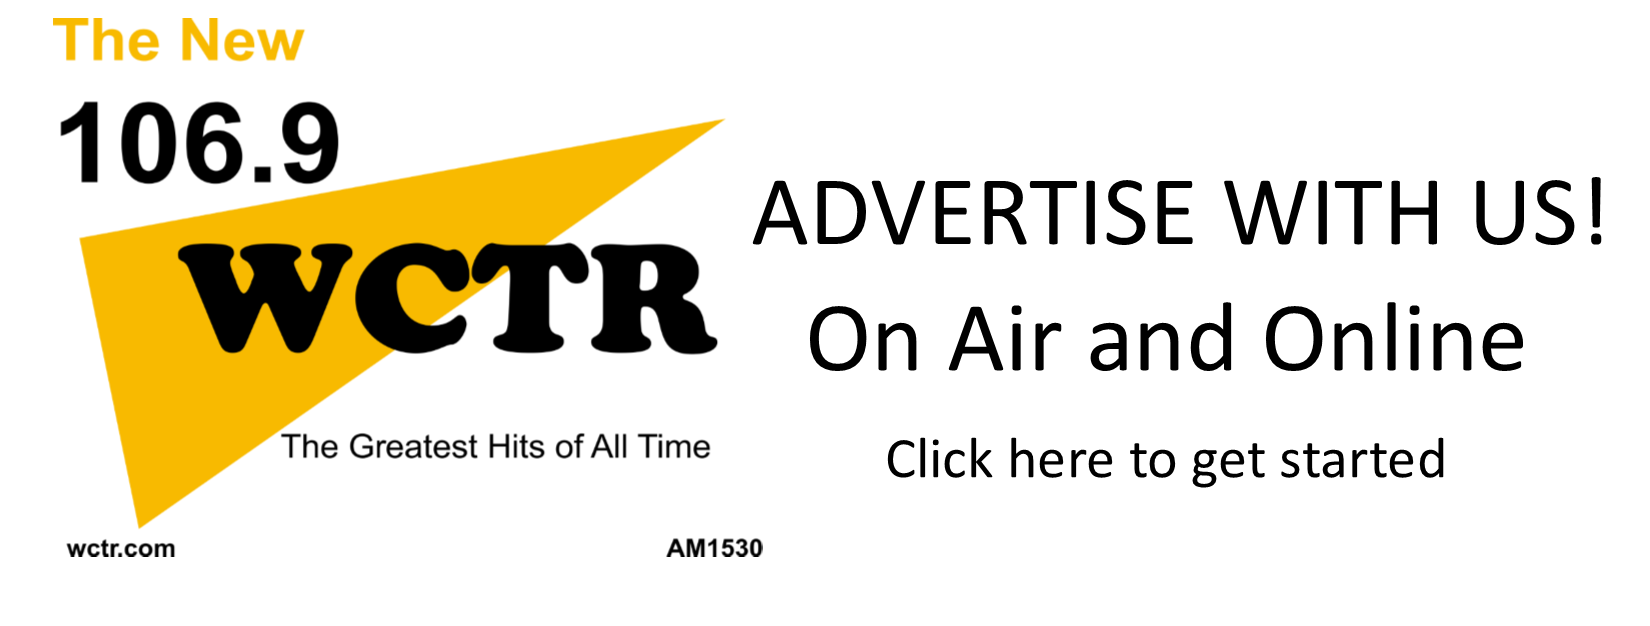 WCTR - AD WITH US!